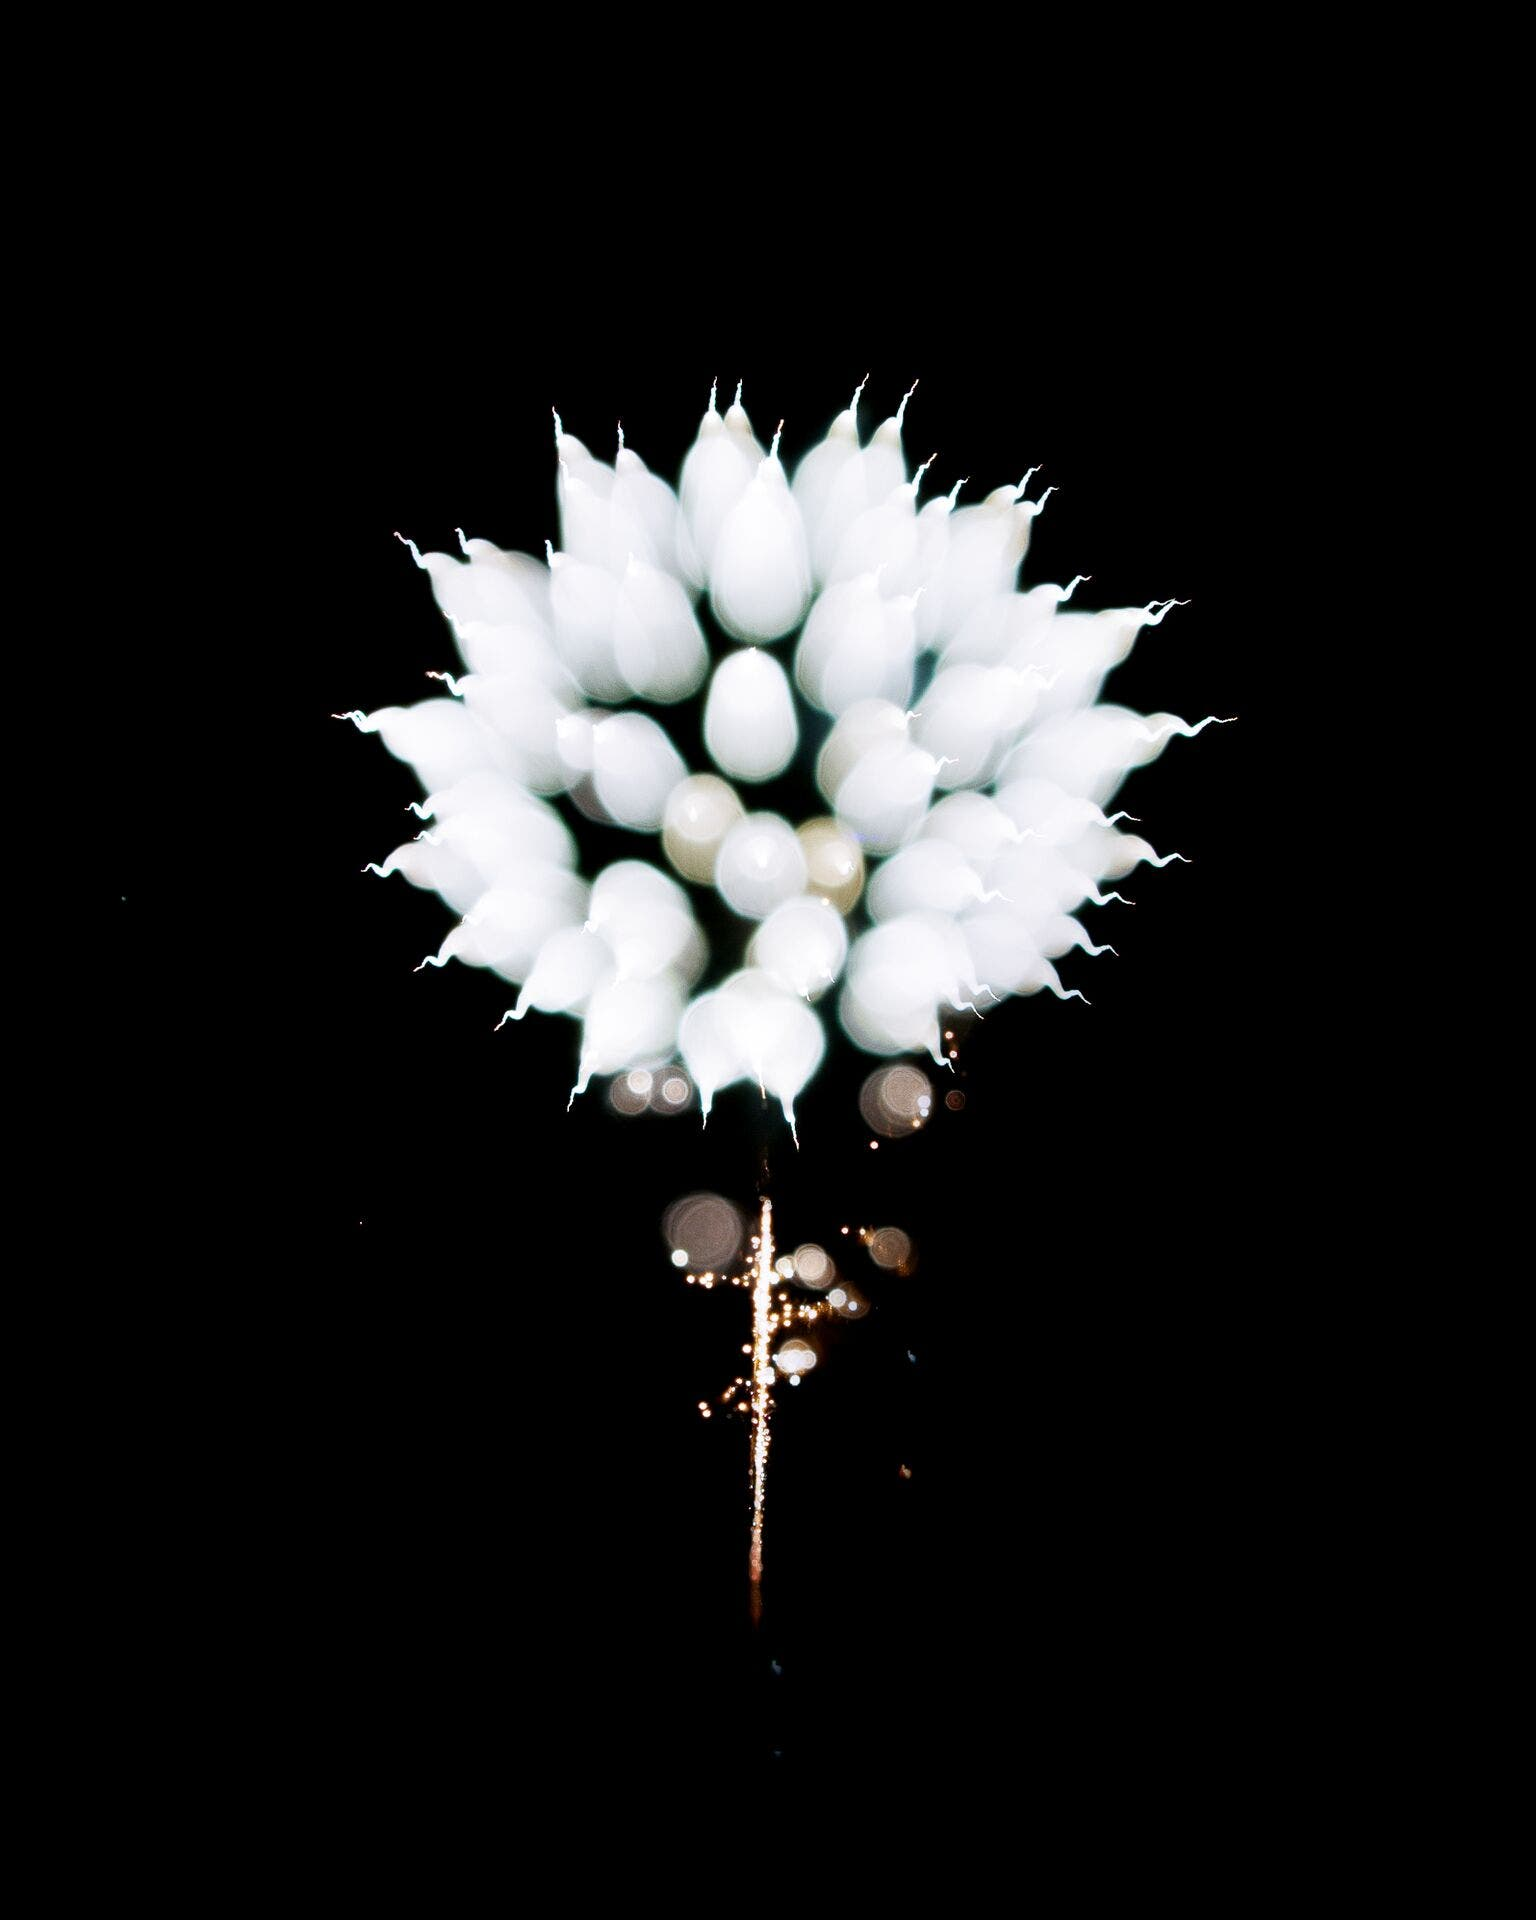 Fireworks or Flower? Charlie Sin's Beautiful Photos Will Mesmerize